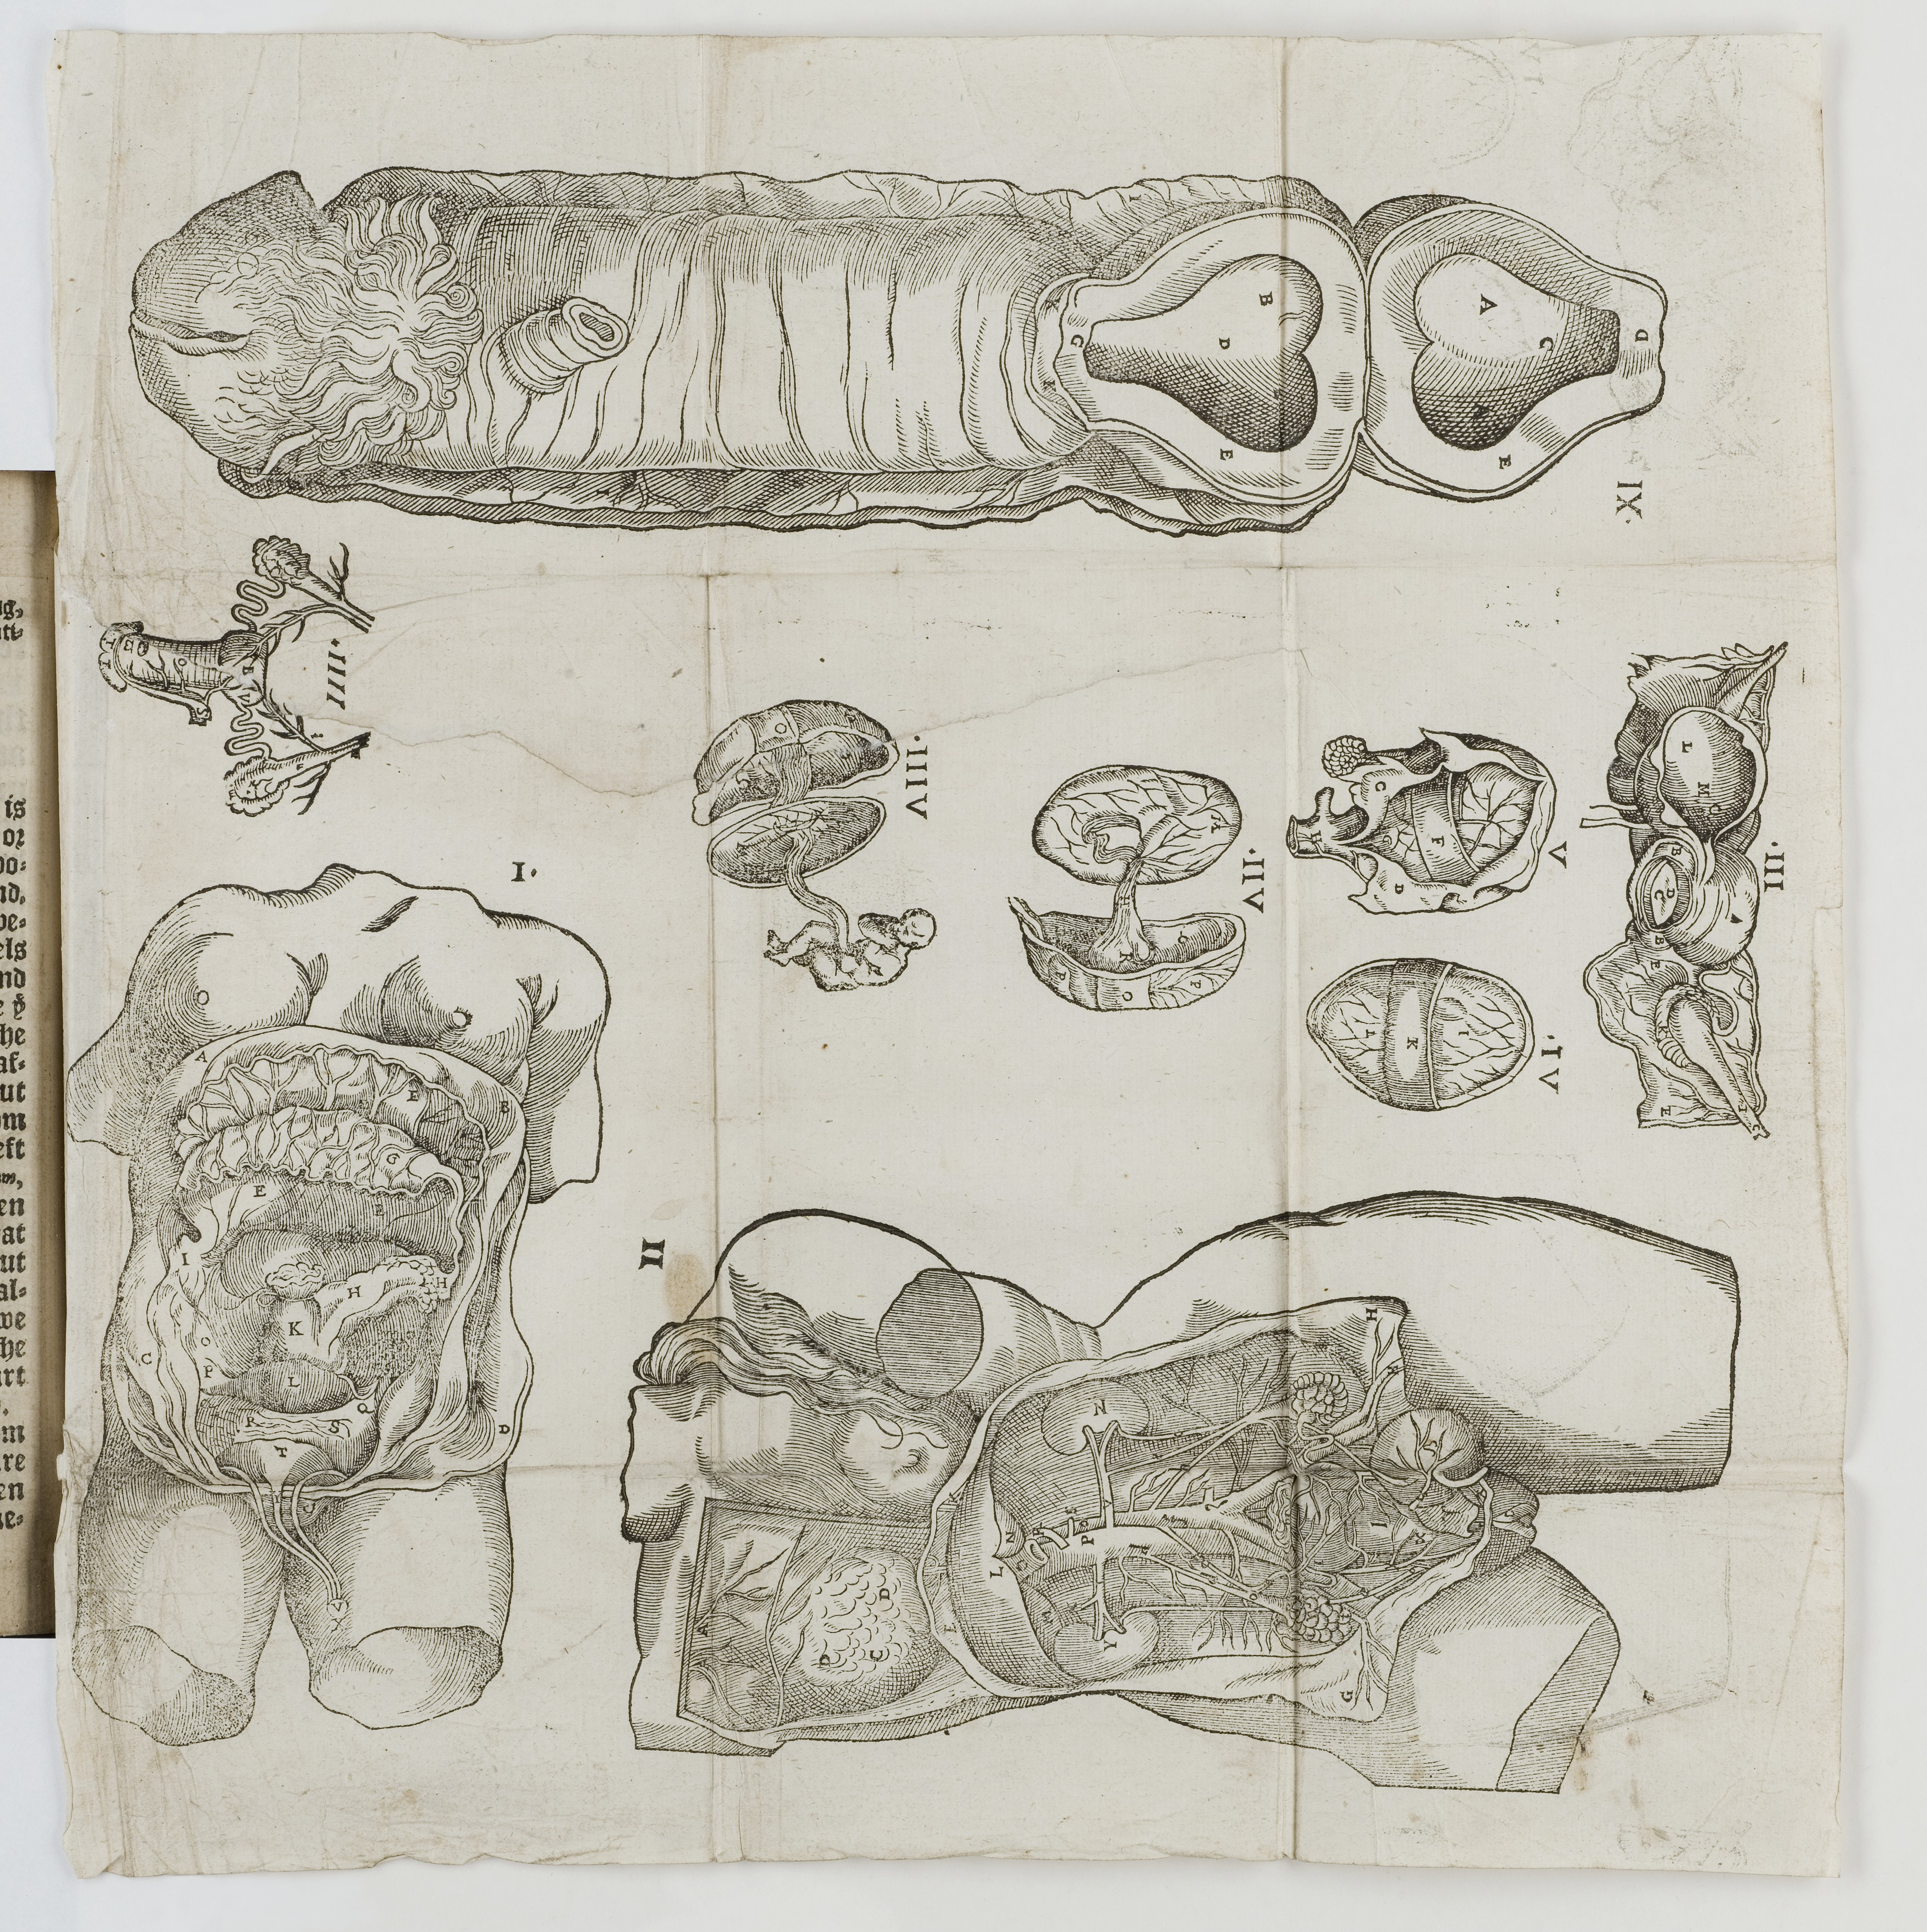 Fileanatomical Diagrams From The Birth Of Mankynde Wellcome